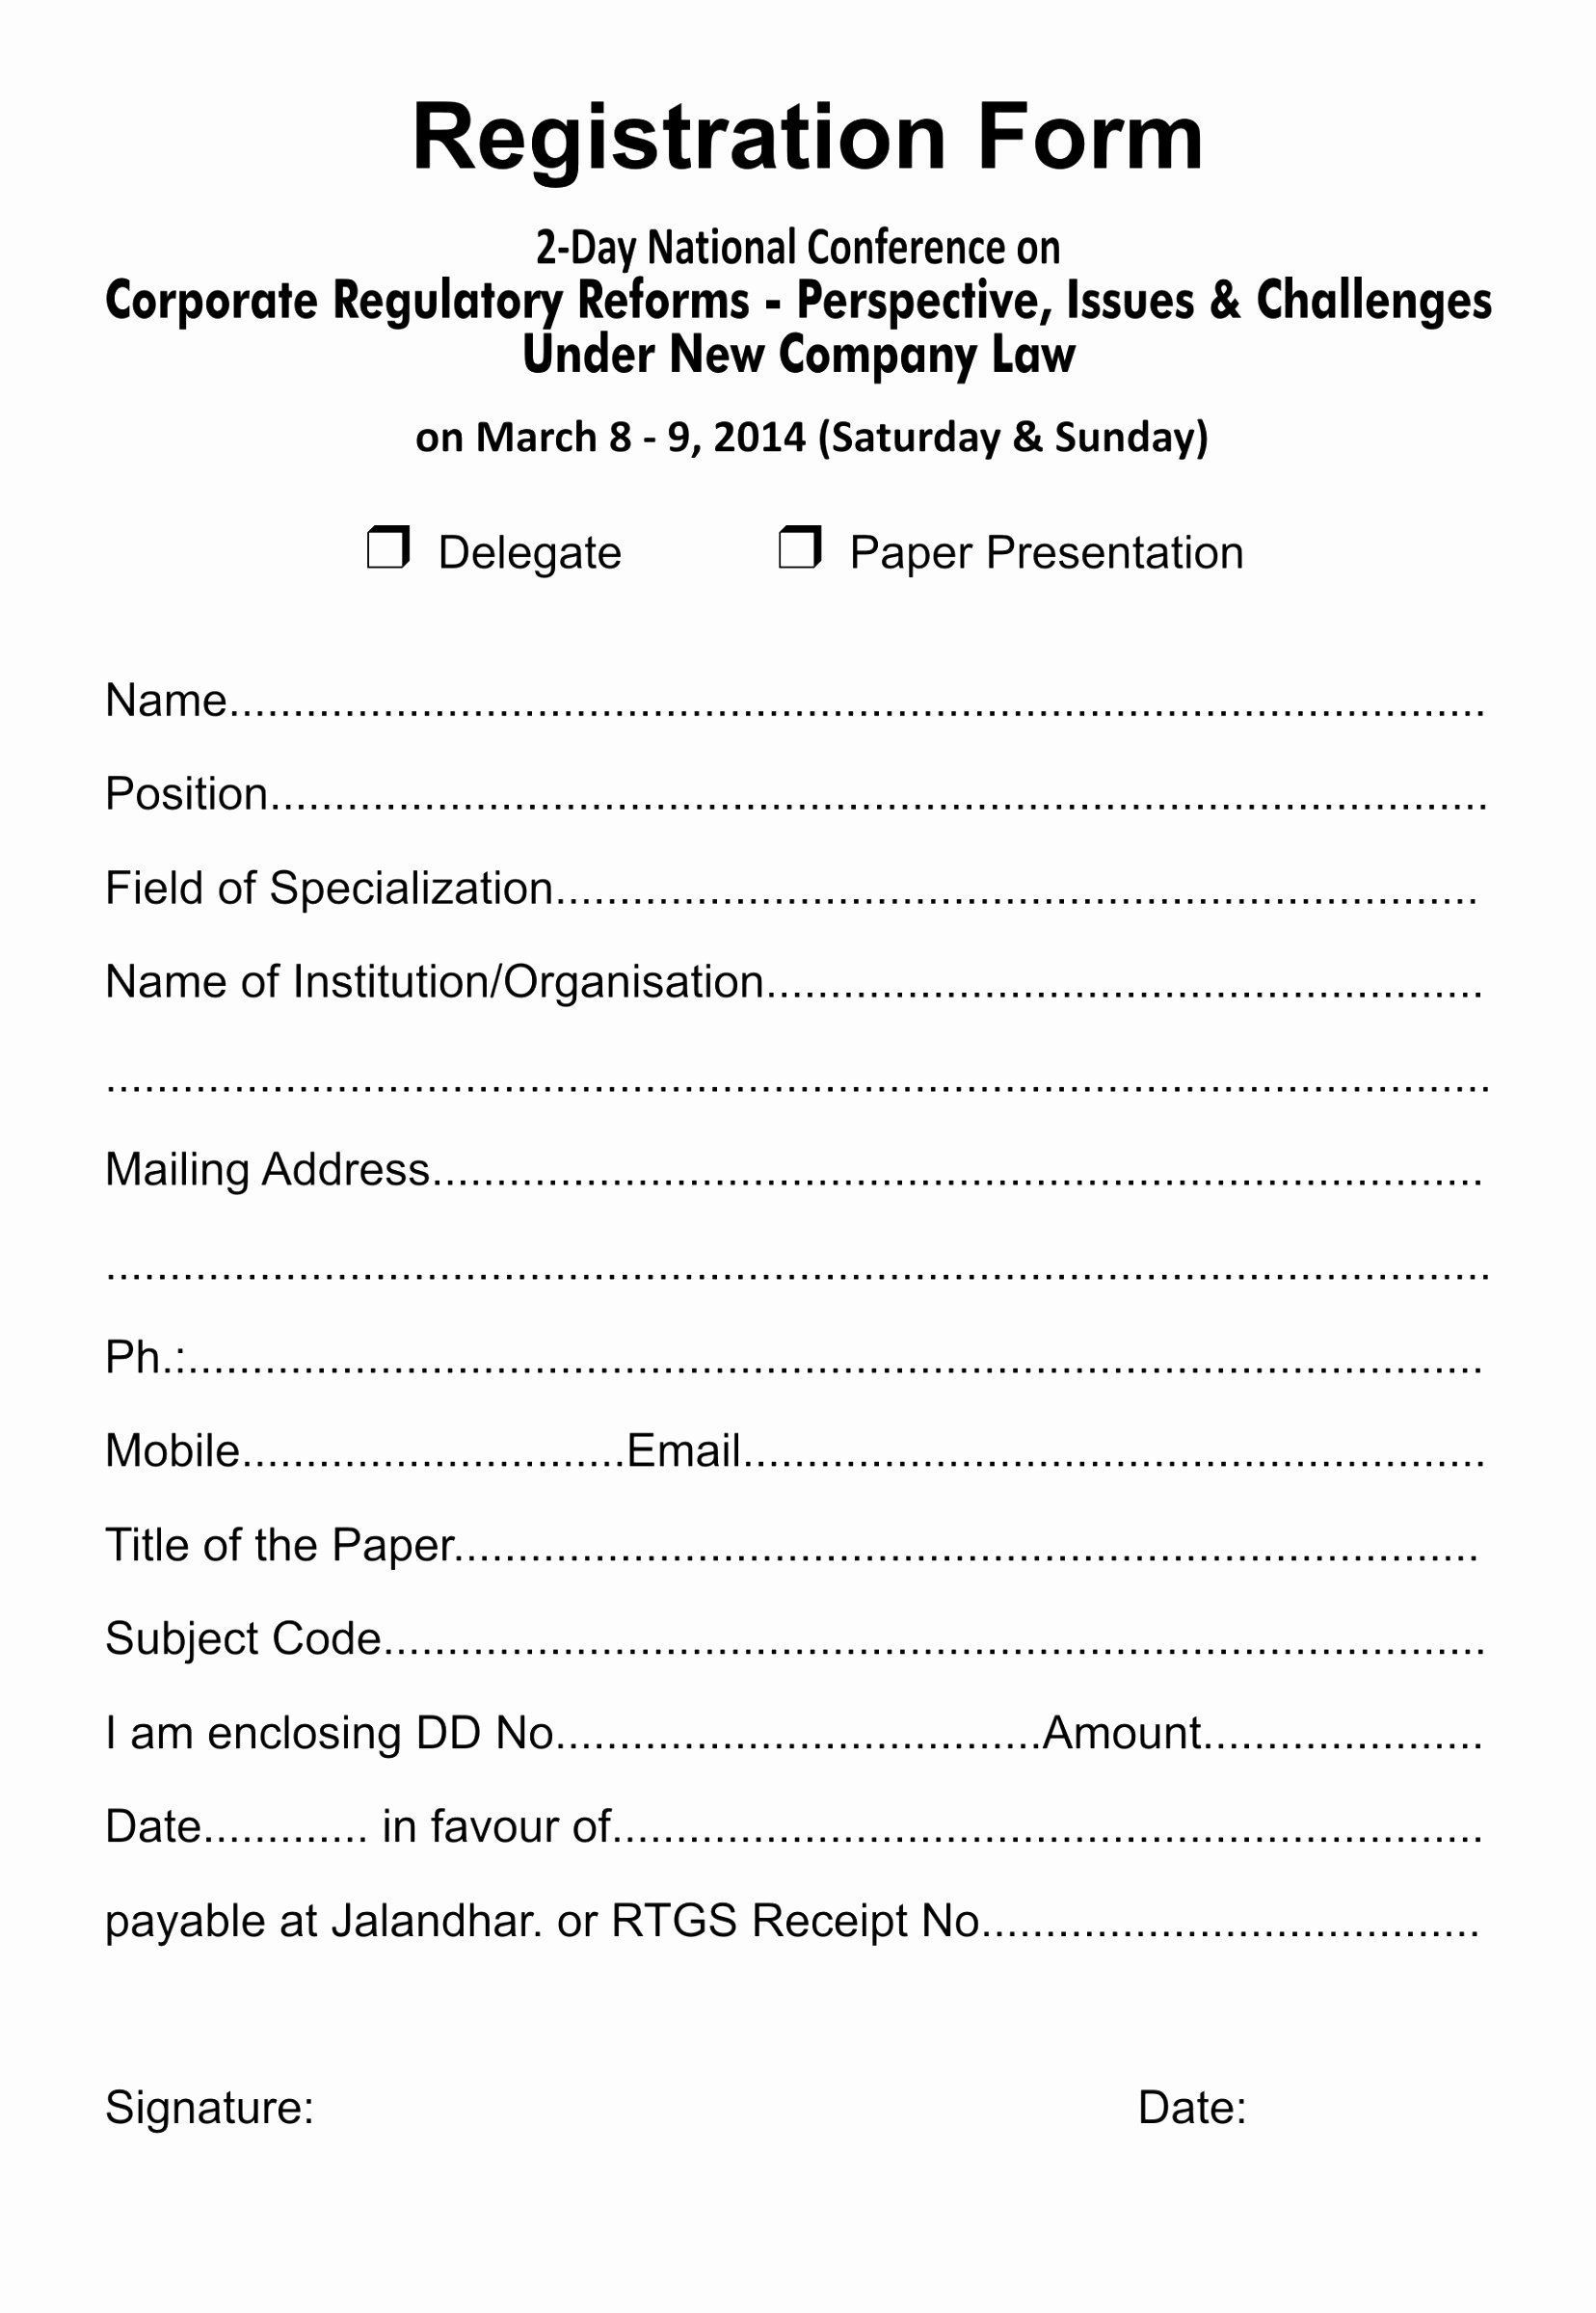 002 Fearsome Registration Form Template Word Design  Conference FreeFull